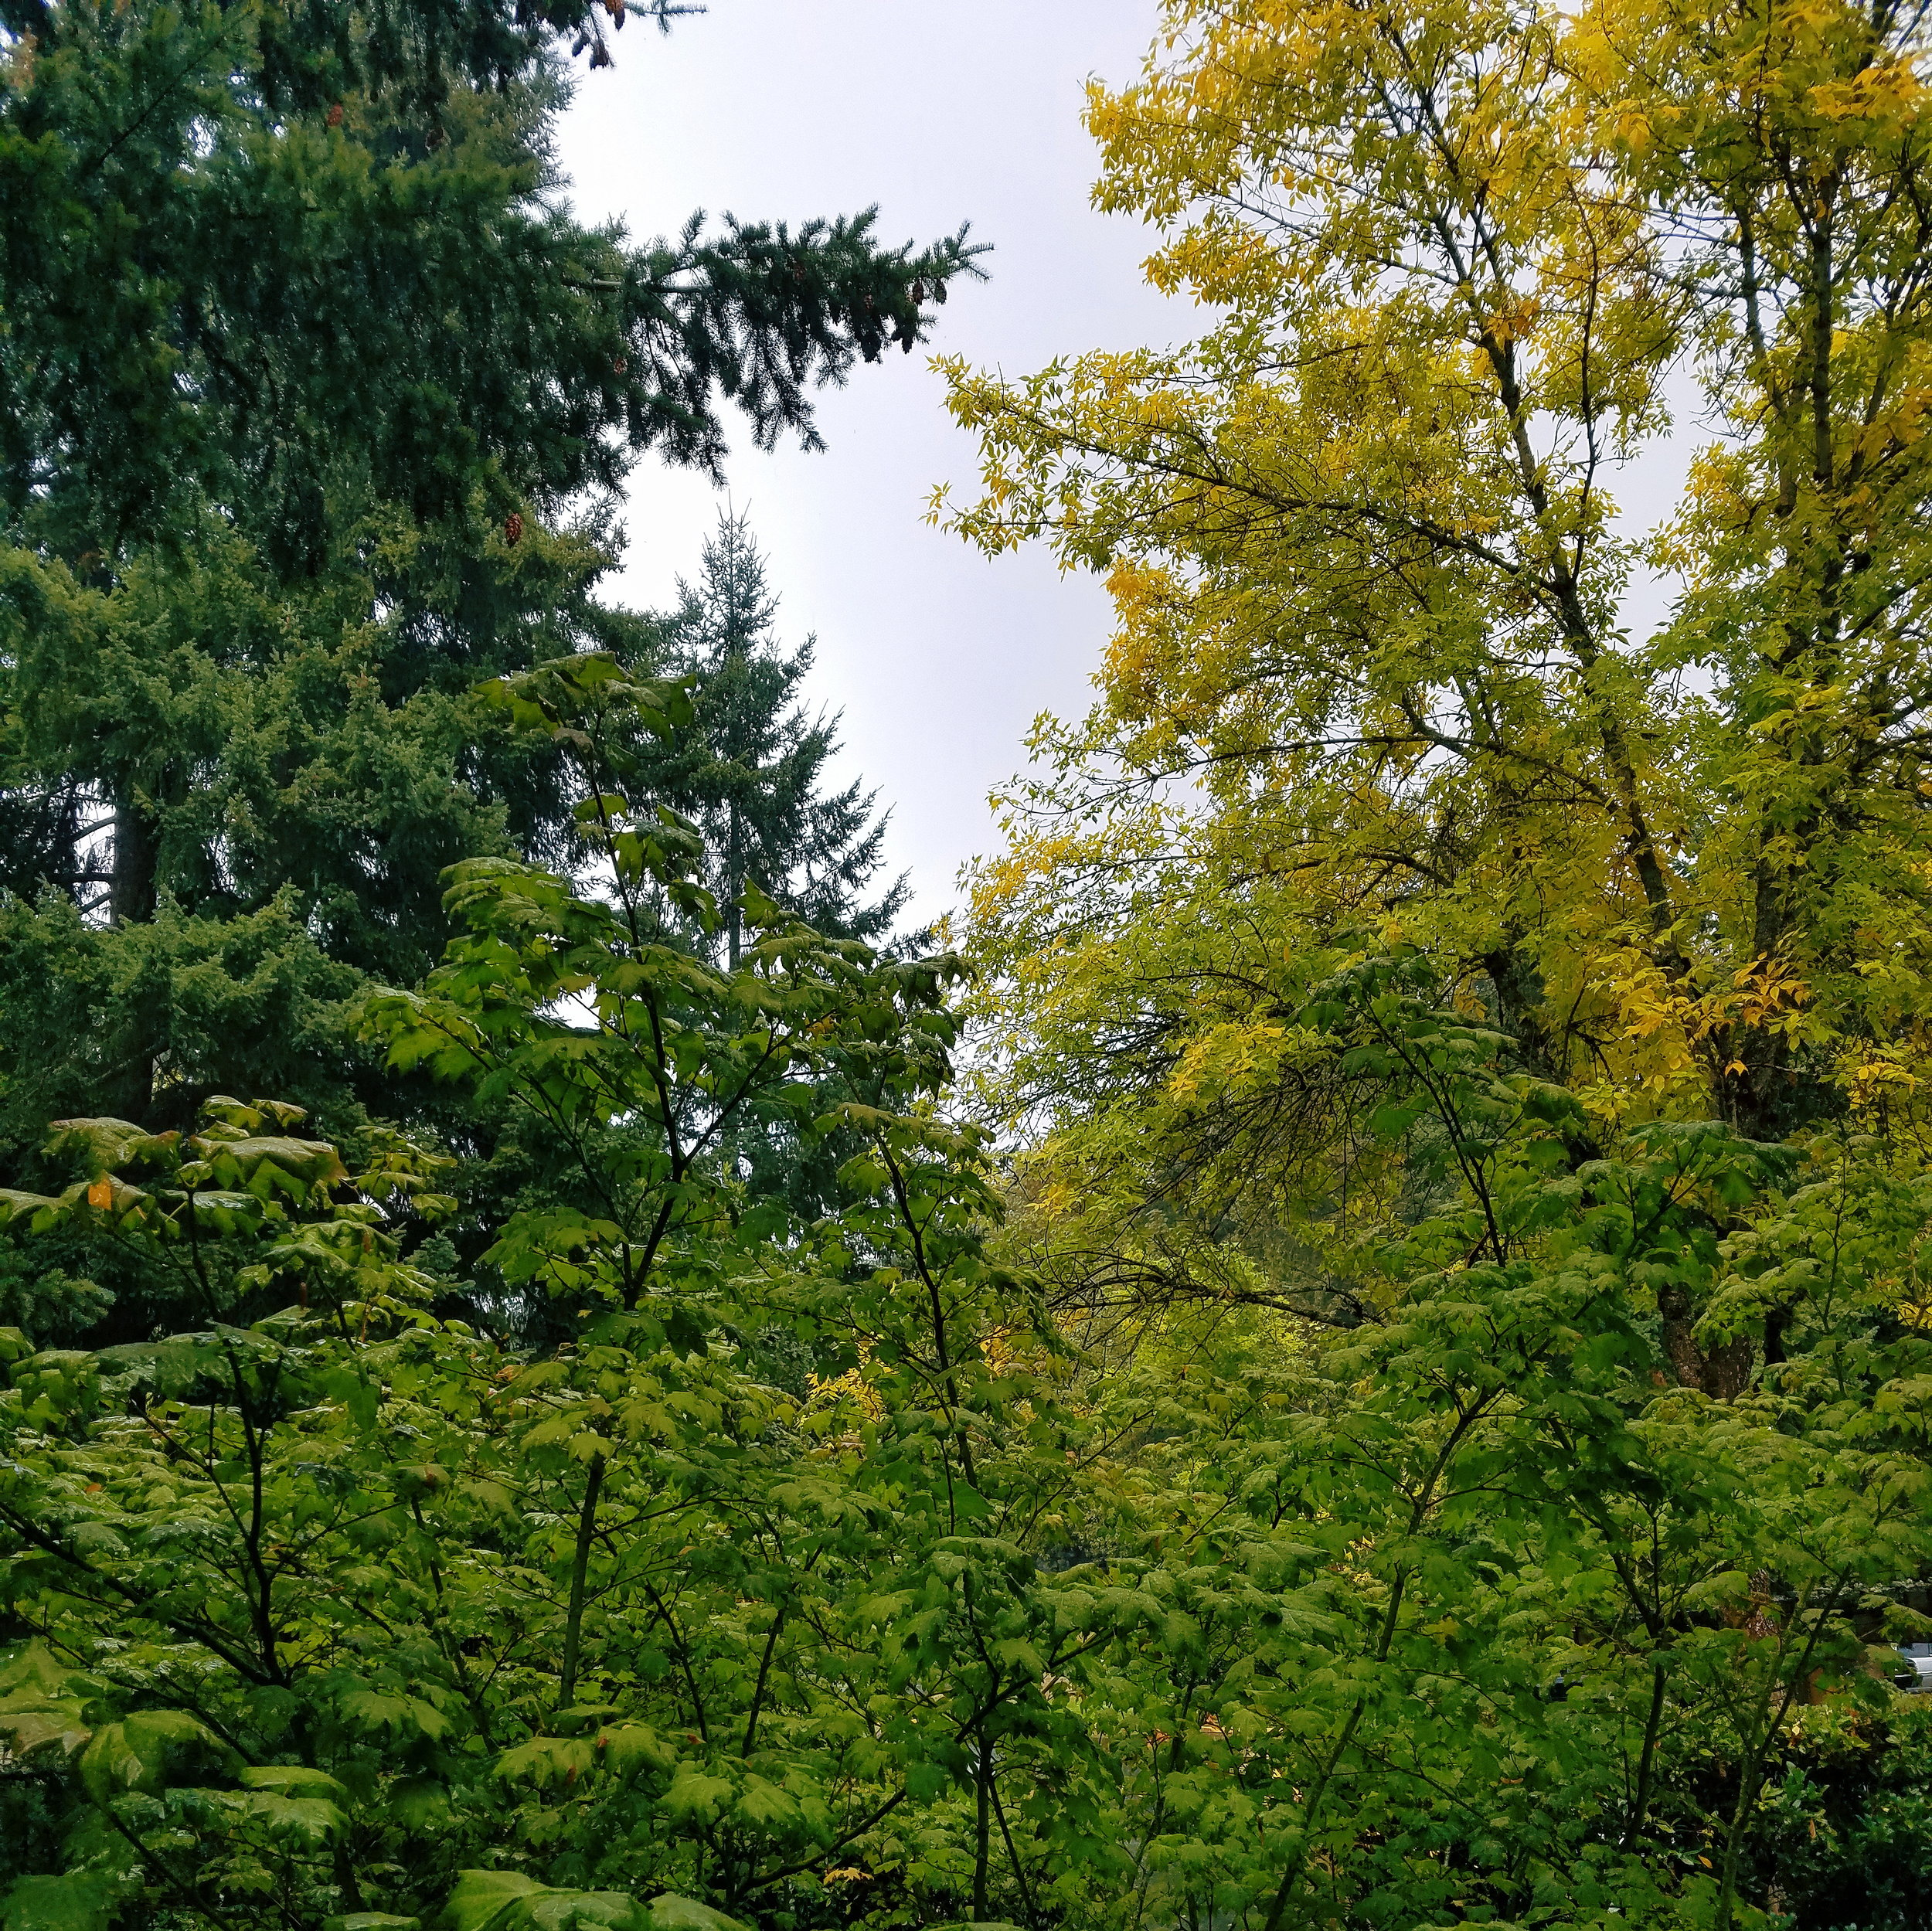 Grey skies and just a hint of fall color - my favorite season is here!